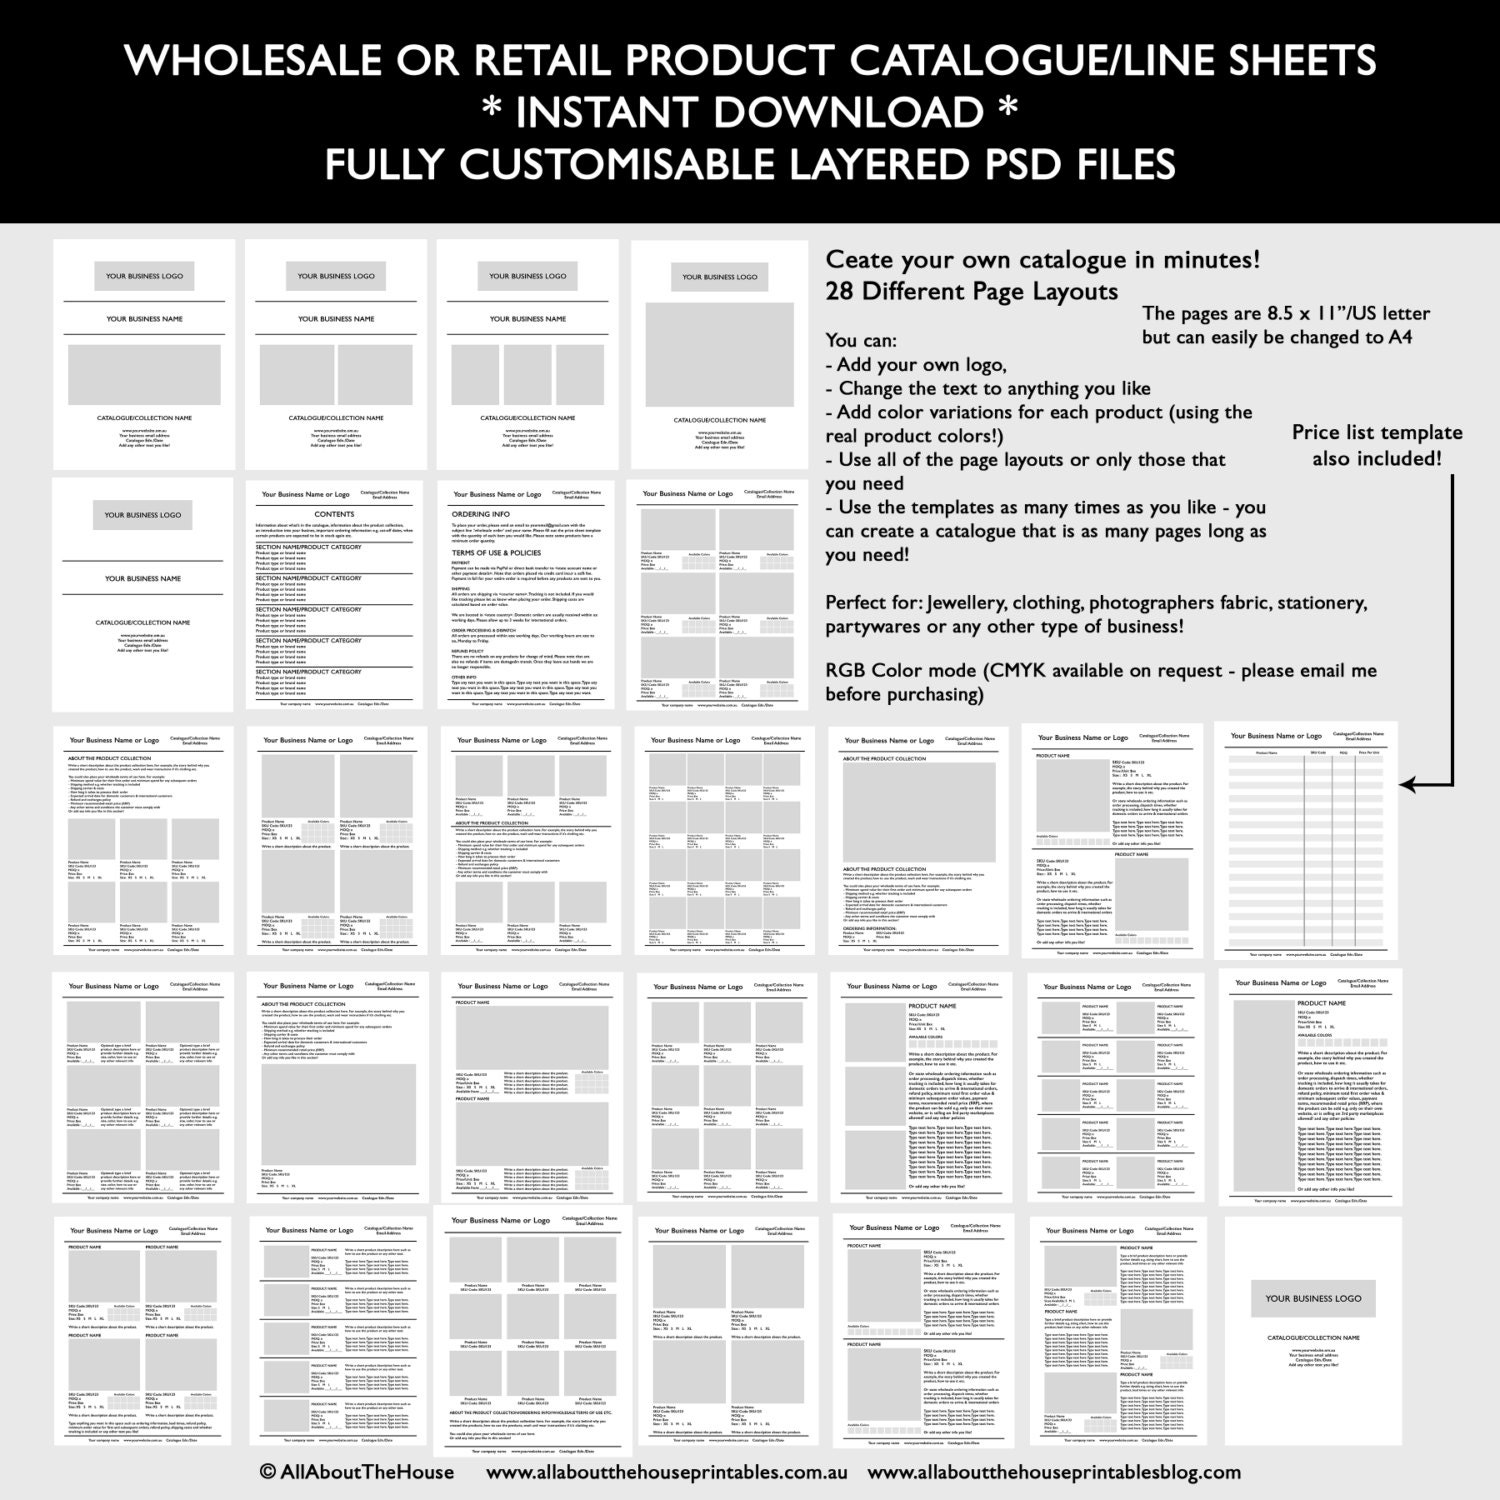 Catalogue template wholesale retail pricing product line etsy image 0 maxwellsz